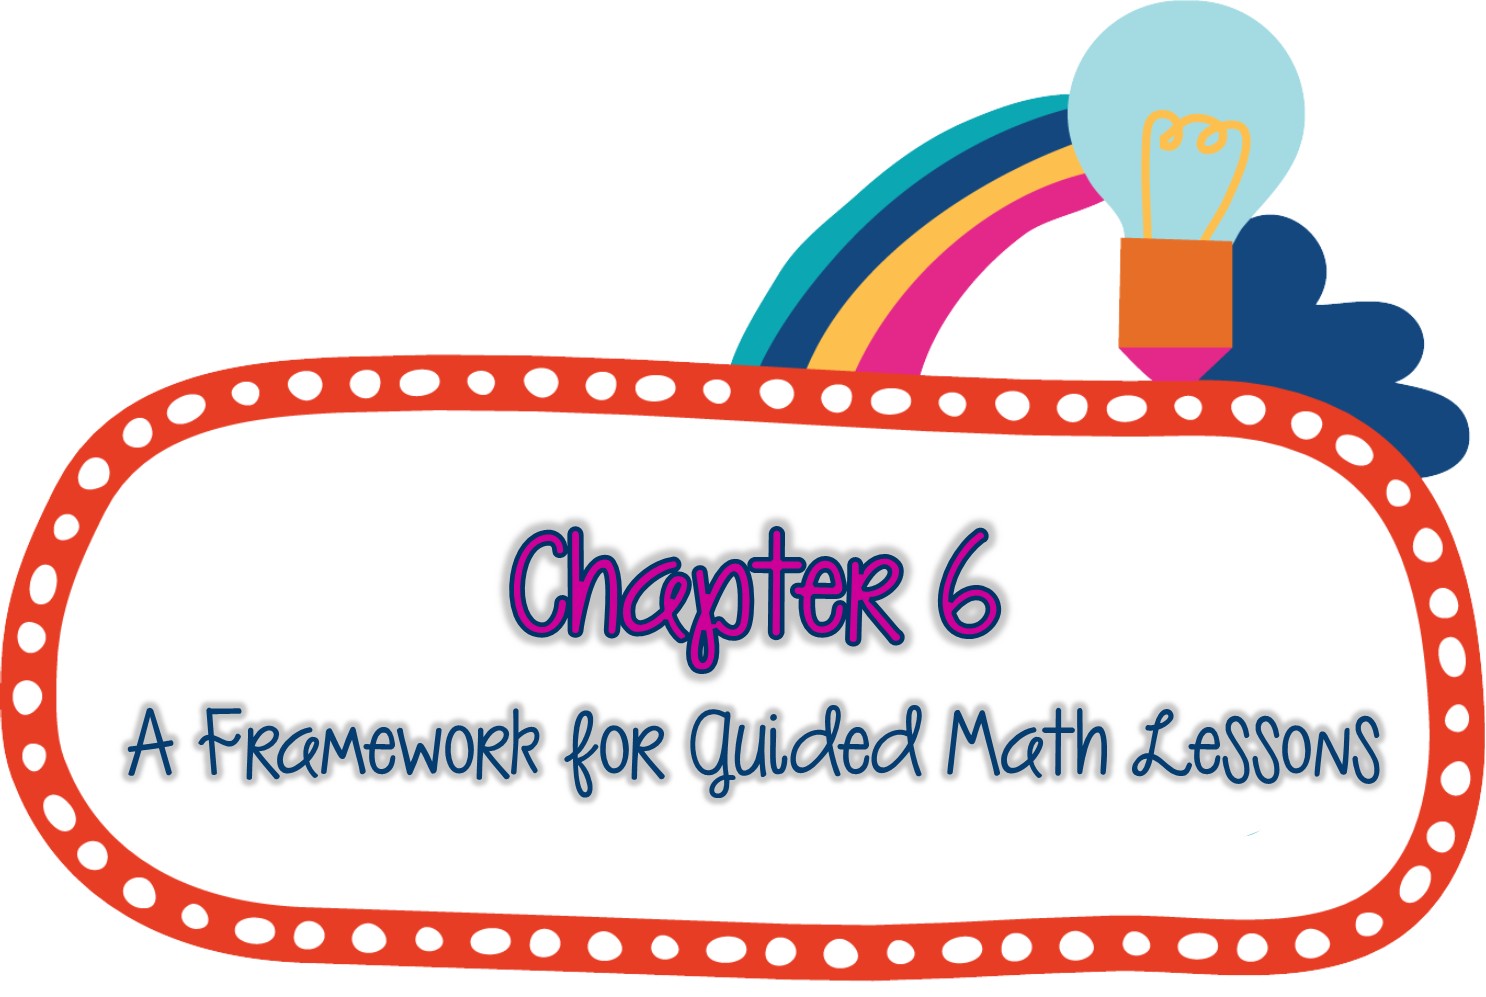 dr nicky newton guided math